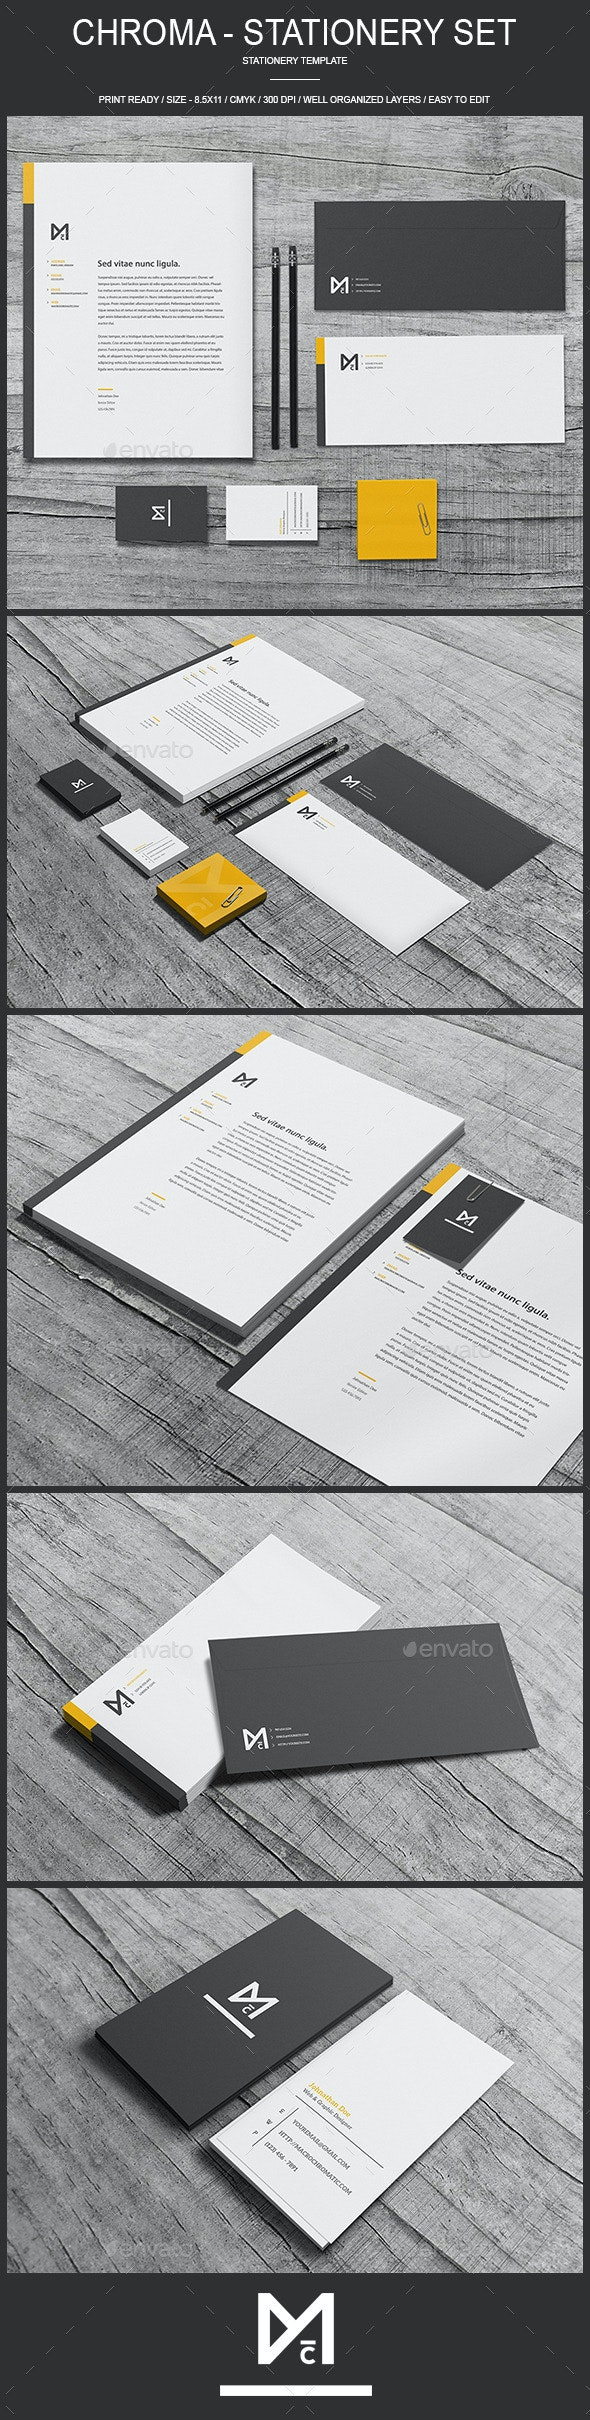 Chroma - Stationery Template - Stationery Print Templates